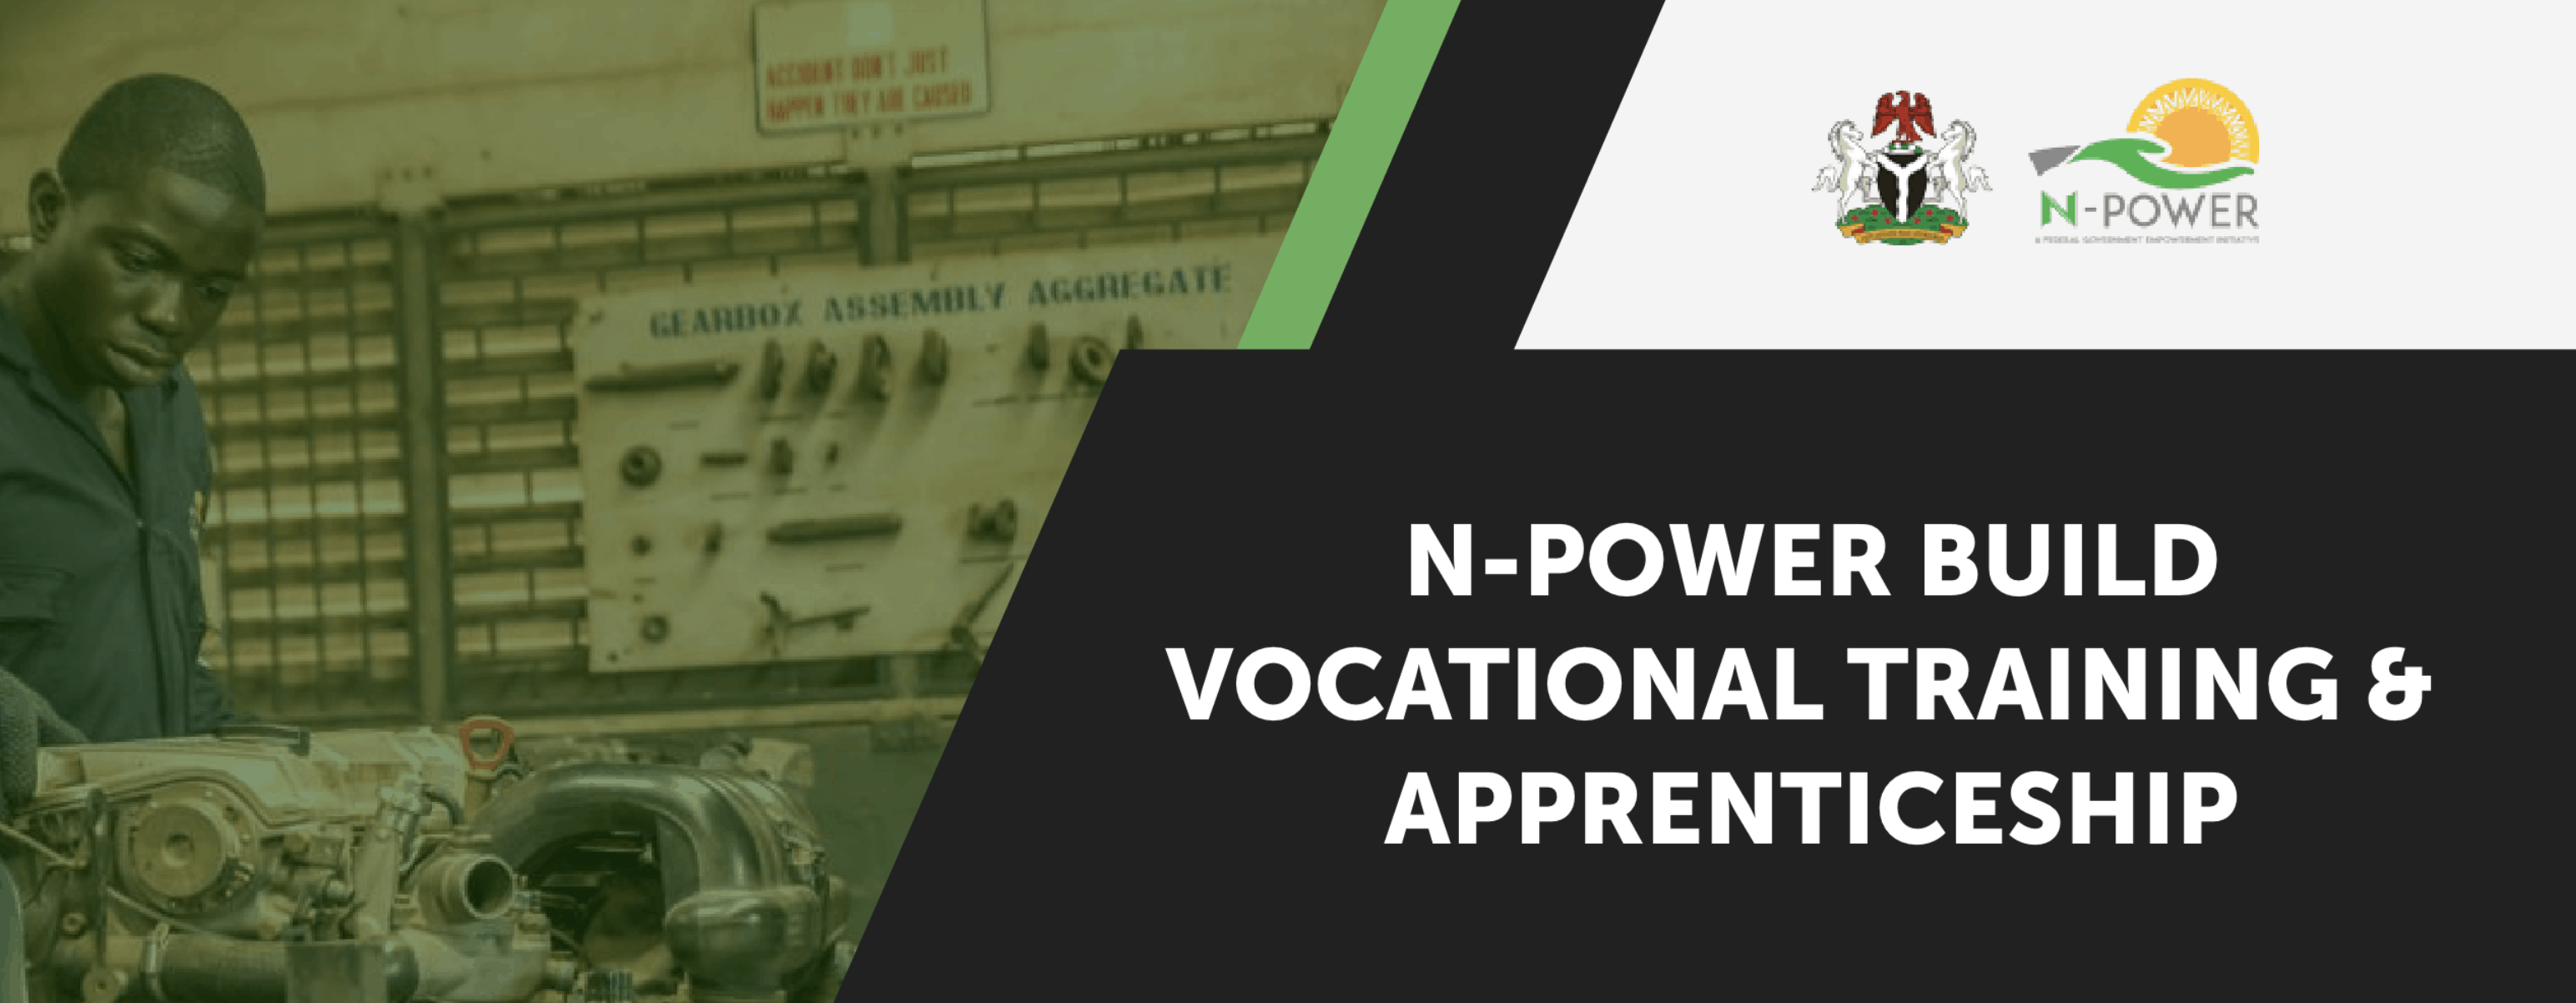 Npower Portal www.npvn.npower.gov.ng2021 Caheck Application Update